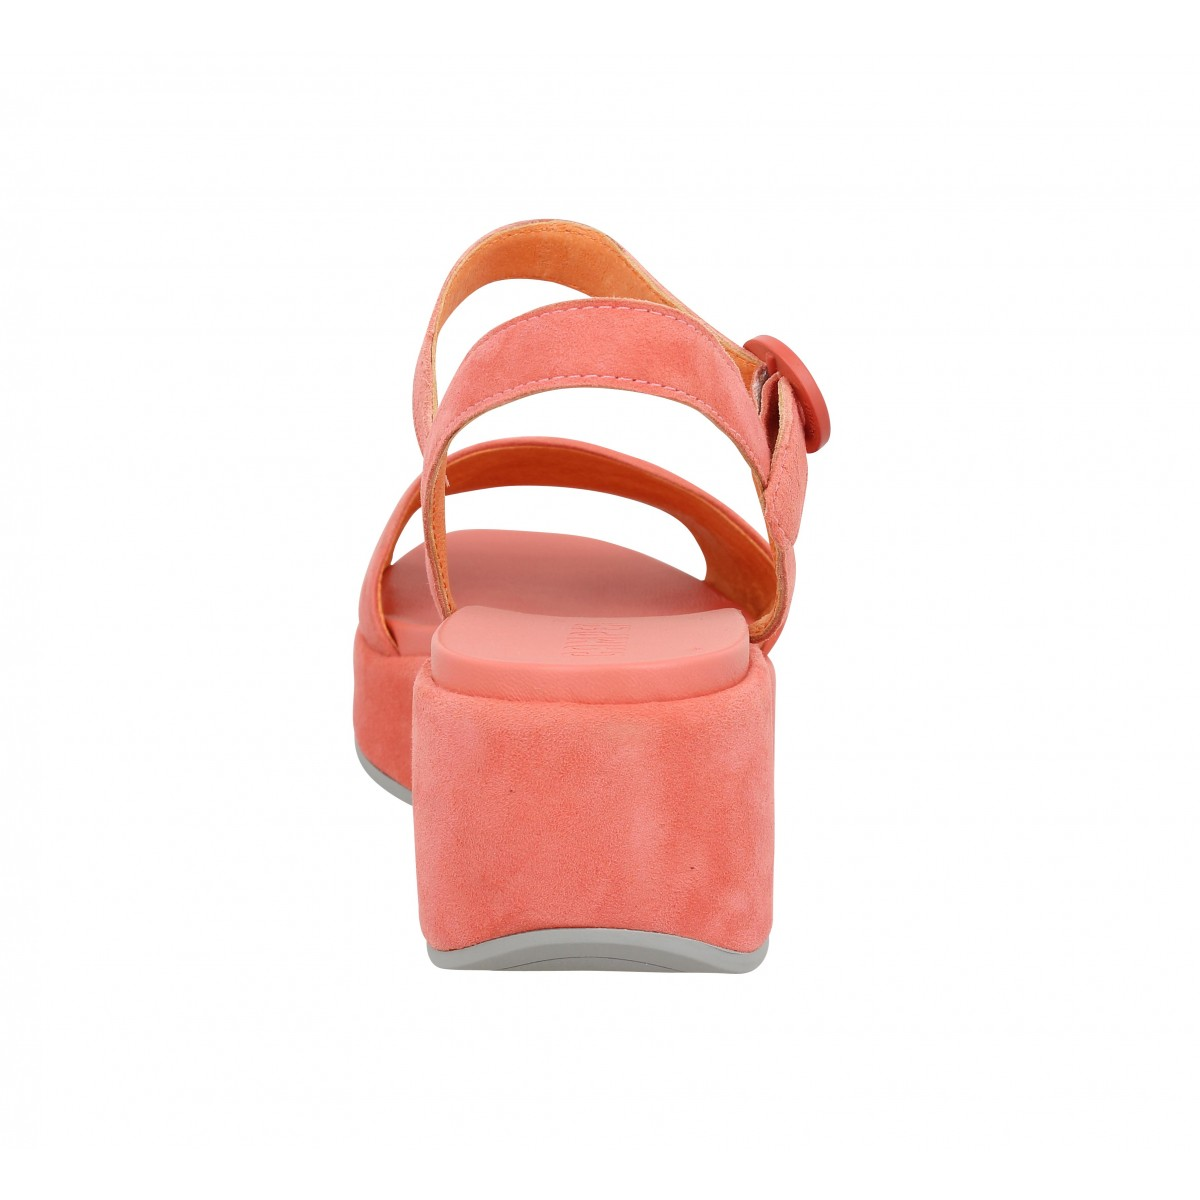 Chaussures Camper Femme Misia Fanny Velours Corail ppdr0qa